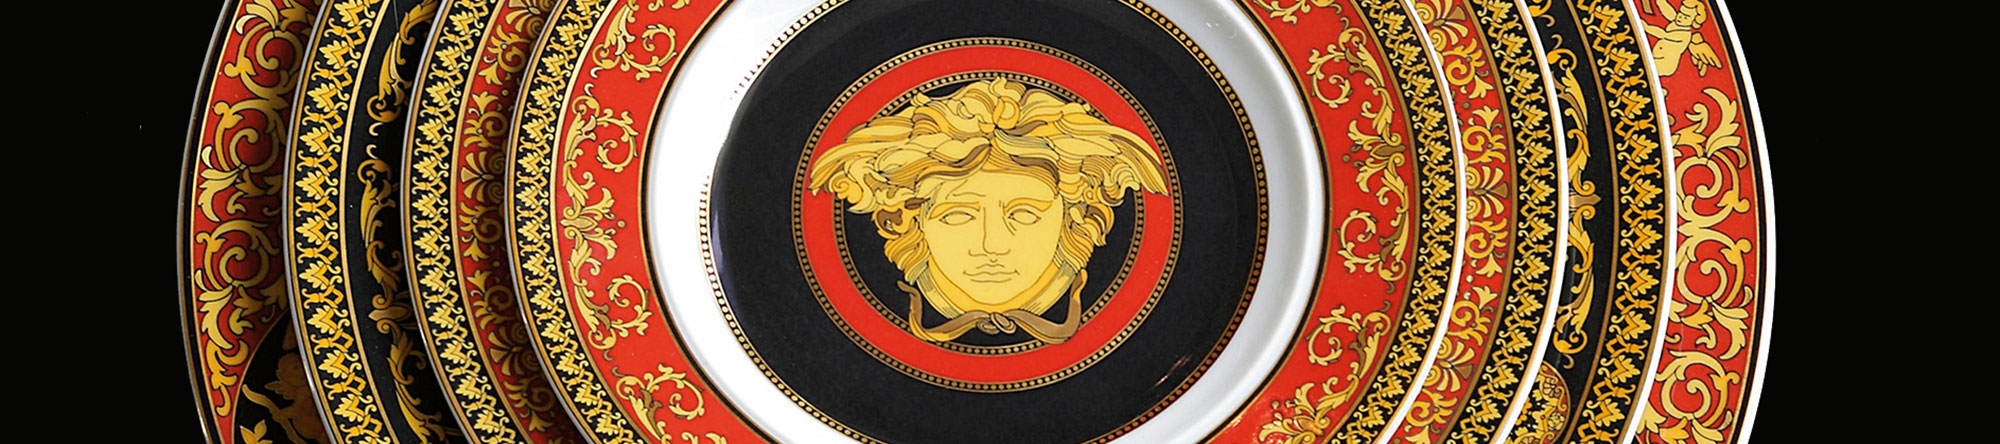 versace-collections-medusa-red.jpg